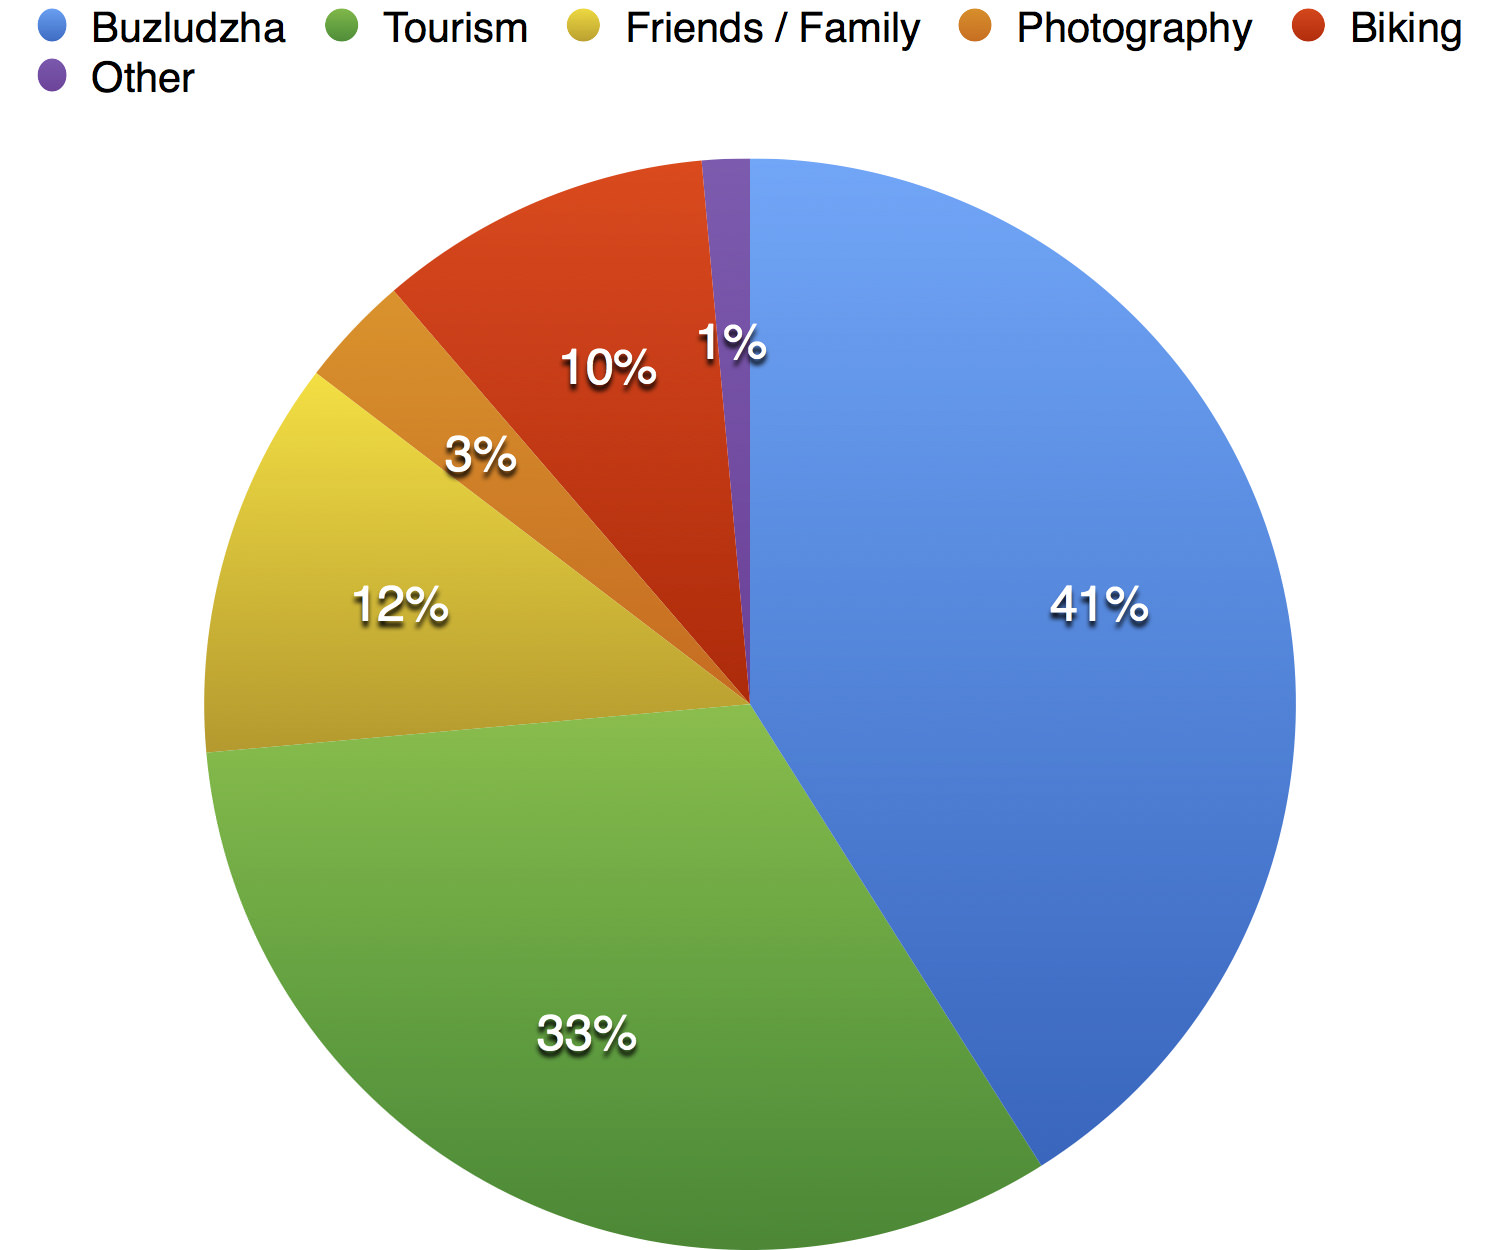 Fig 5: Main Reason for Visiting Bulgaria (Others: Business, Academic Research, Volunteering.)